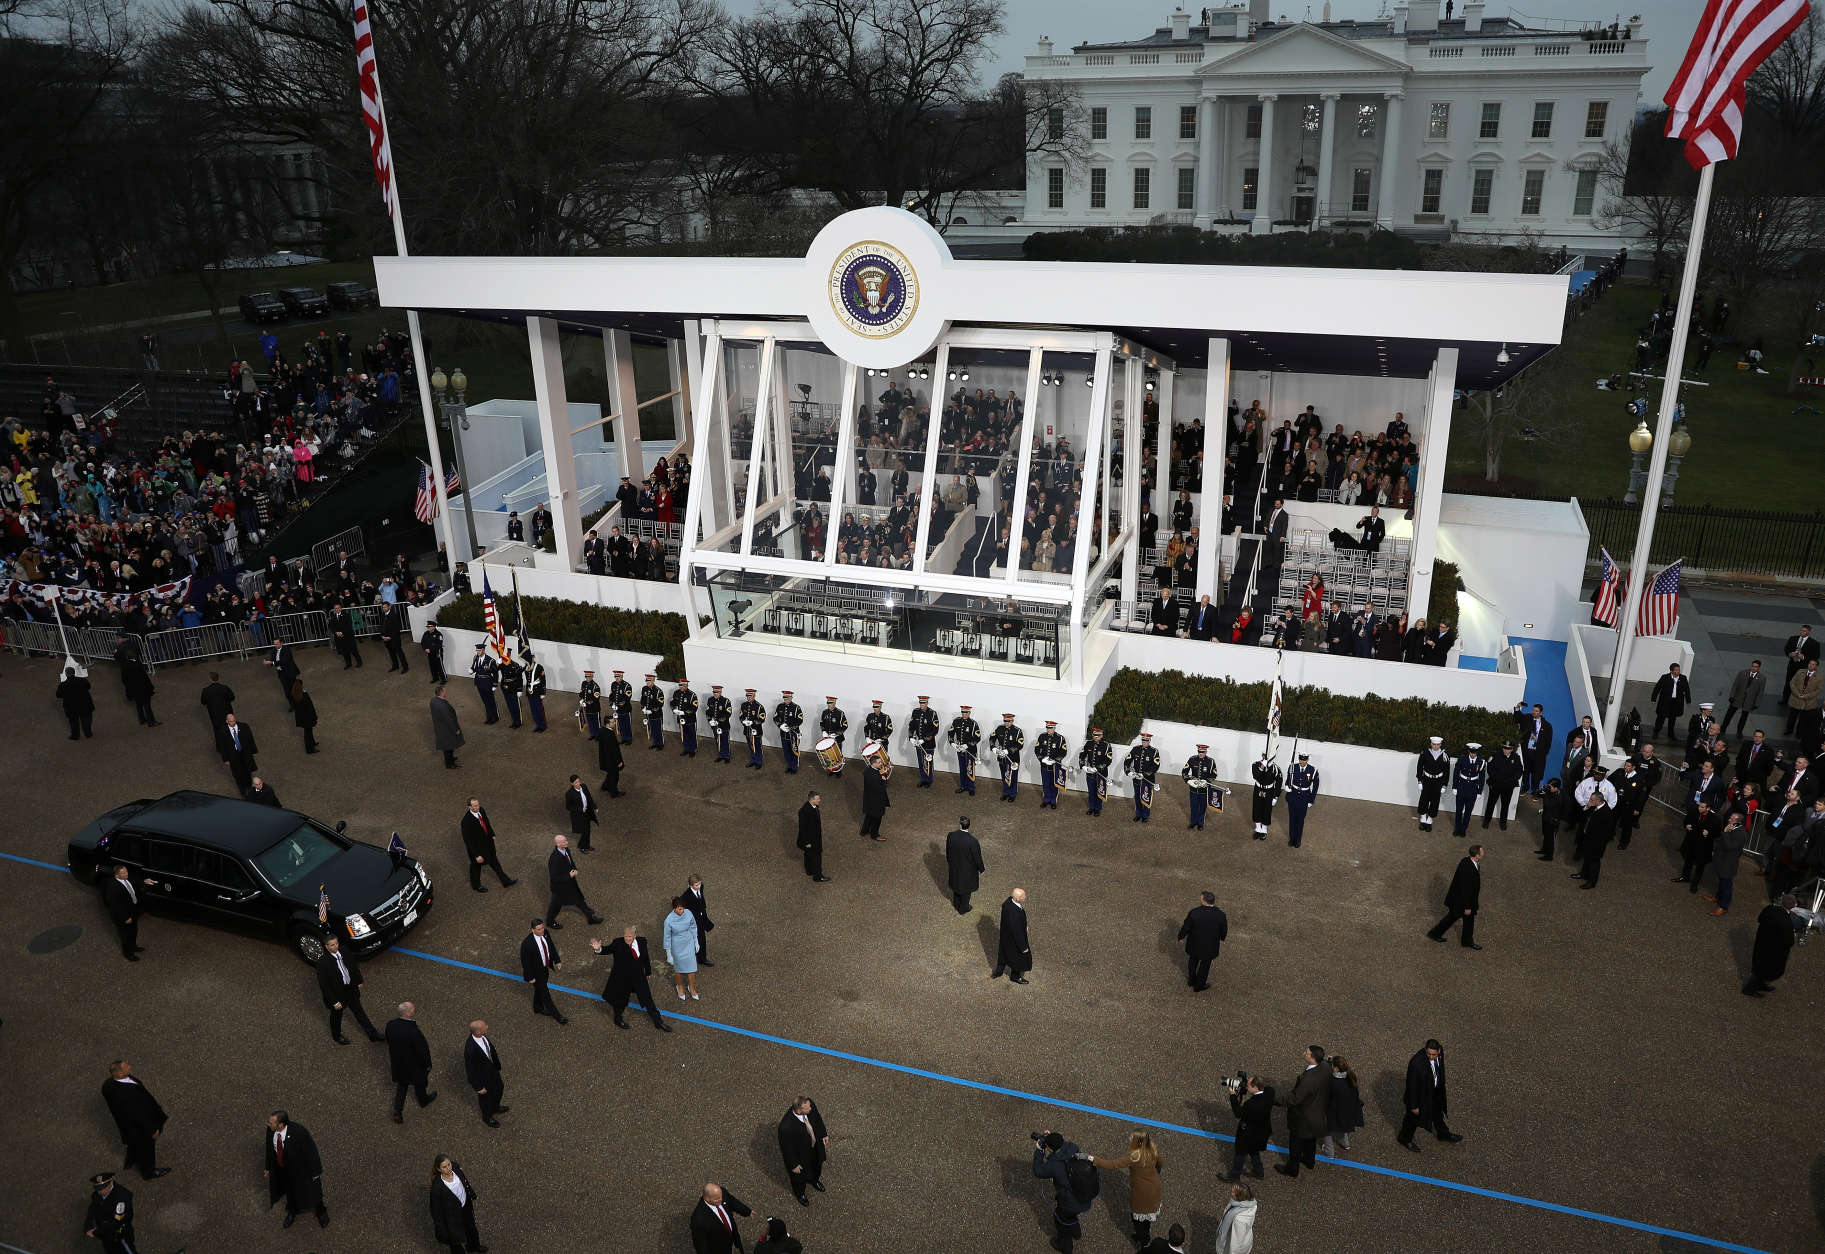 WASHINGTON, DC - JANUARY 20:  U.S. President Donald Trump waves to supporters as he walks the parade route with first lady Melania Trump and son Barron Trump past the main reviewing stand in front of the White House during the Inaugural Parade on January 20, 2017 in Washington, DC. Donald J. Trump was sworn in today as the 45th president of the United States.  (Photo by Joe Raedle/Getty Images)